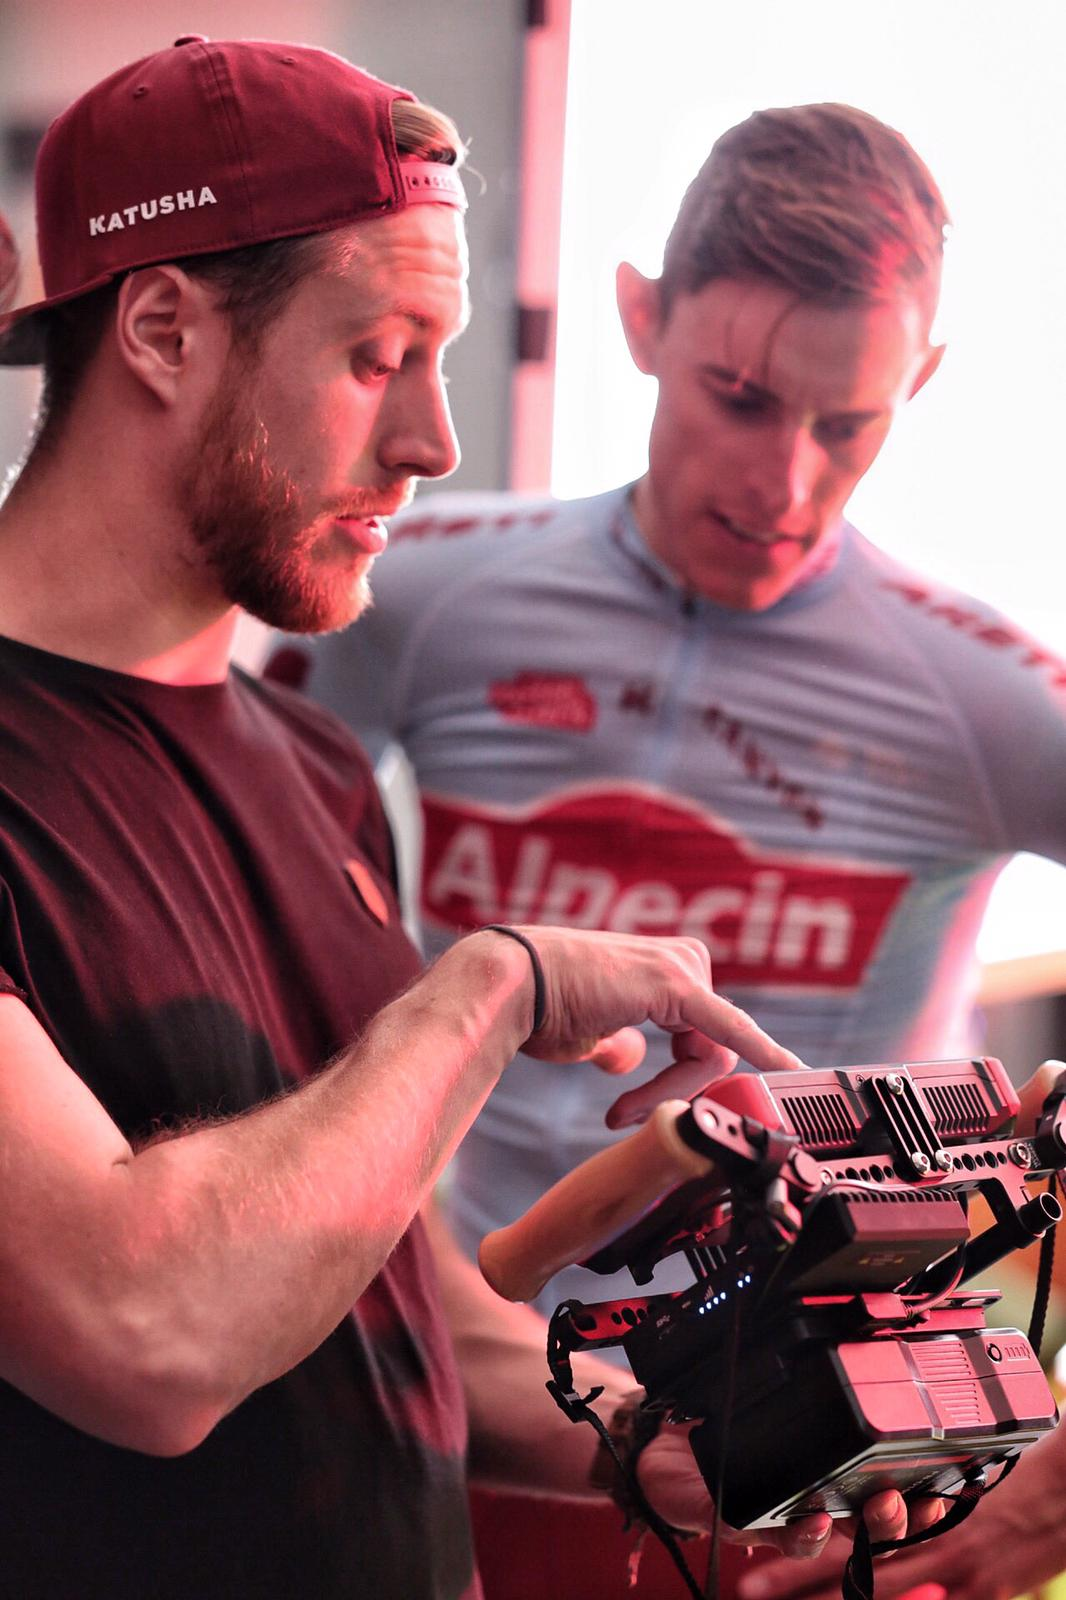 New shots for our Alpecin TV commercial